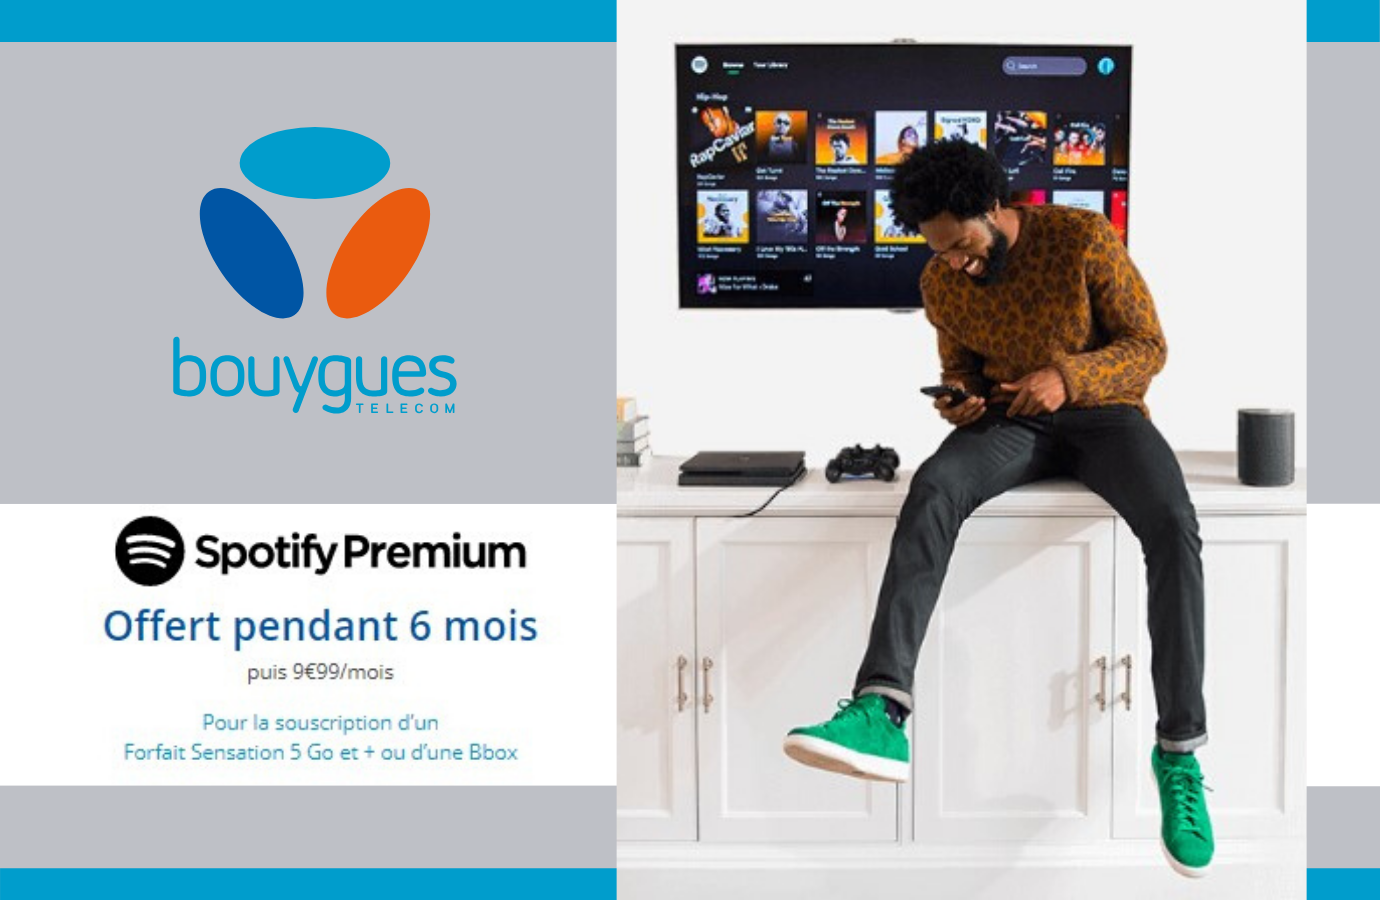 offre-Bouygues-spotify